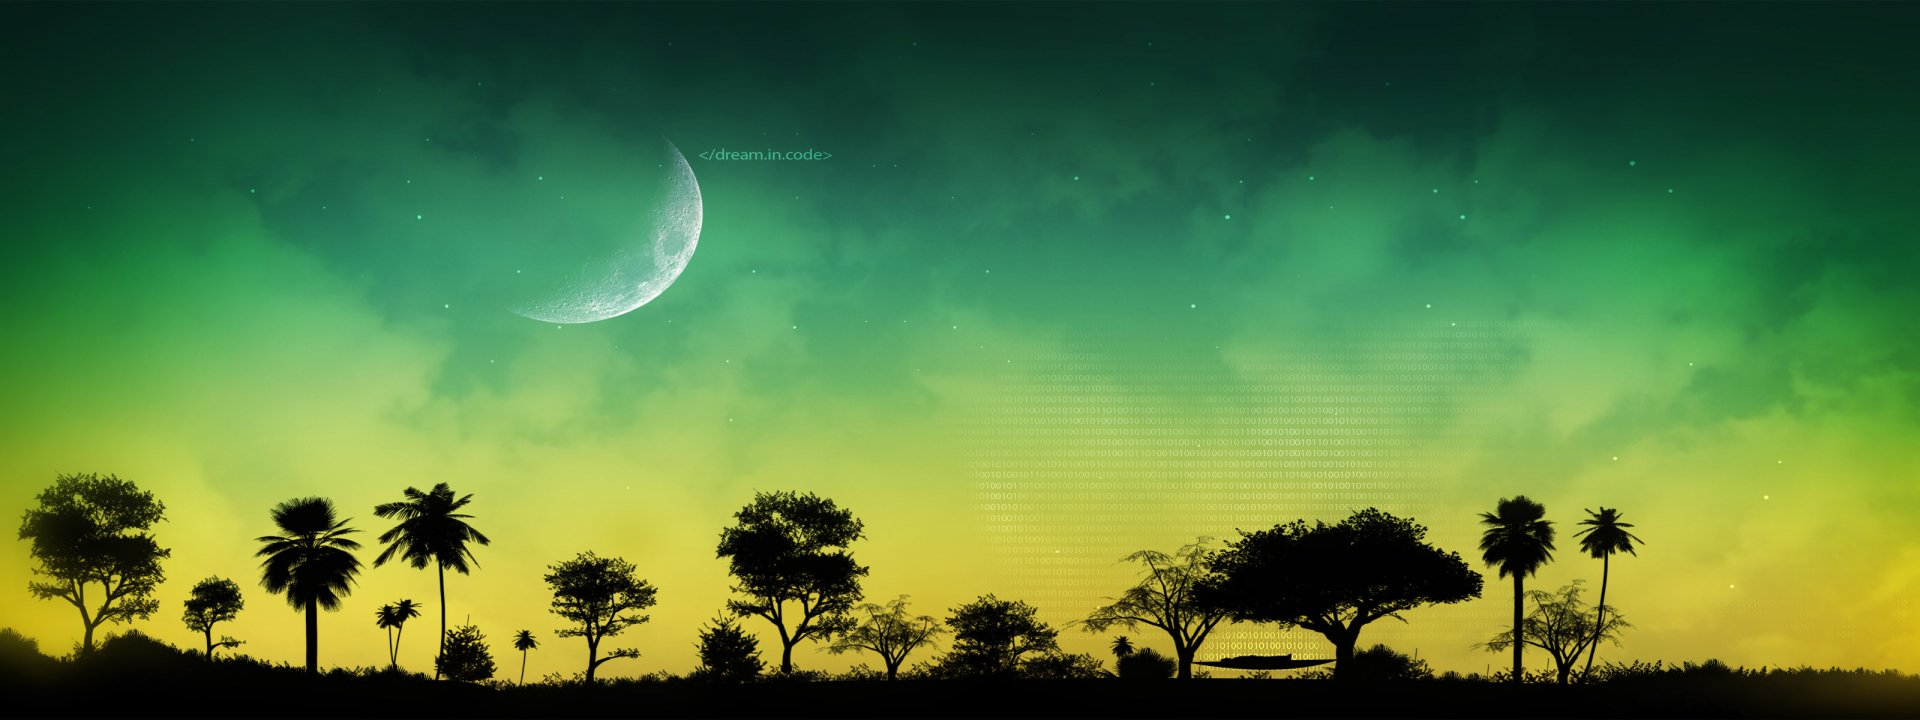 Multi Monitor - Abstract  Landscape Tree Moon Wallpaper